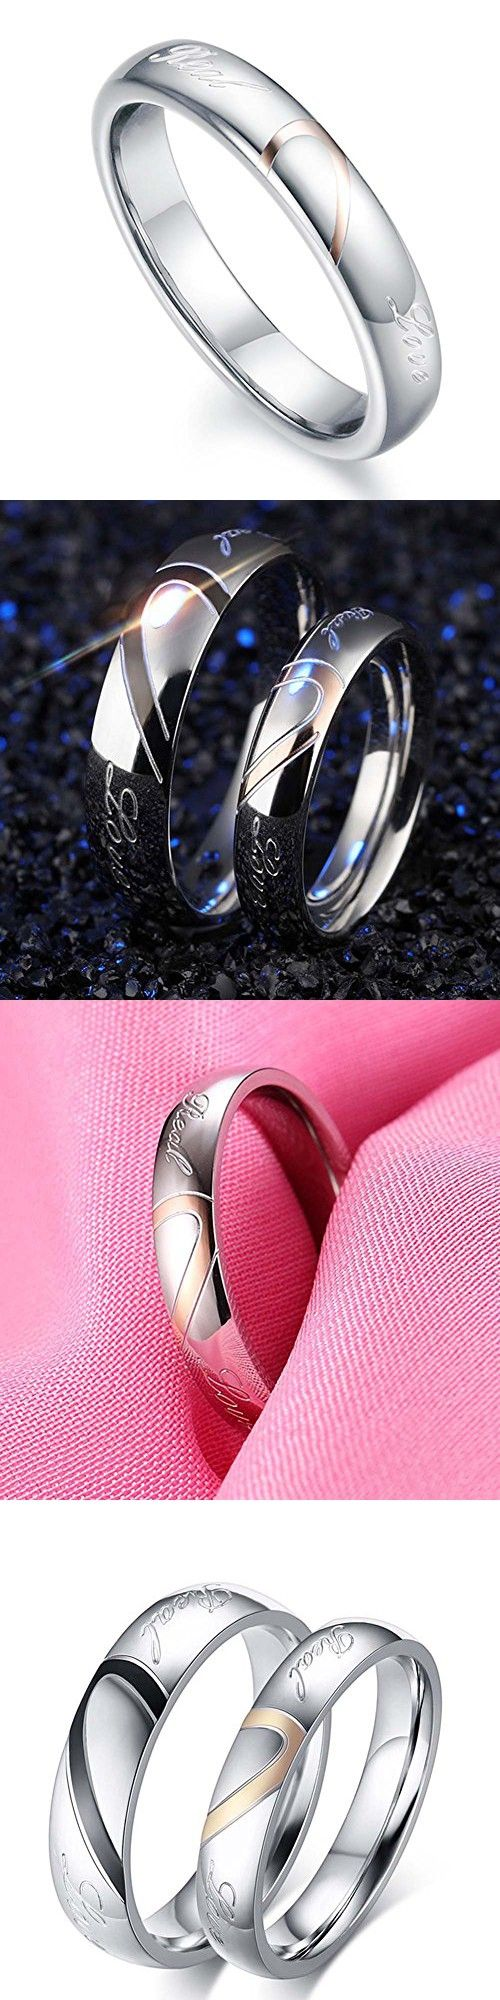 976 best Wedding Bands images on Pinterest | Engagement rings, Gold ...